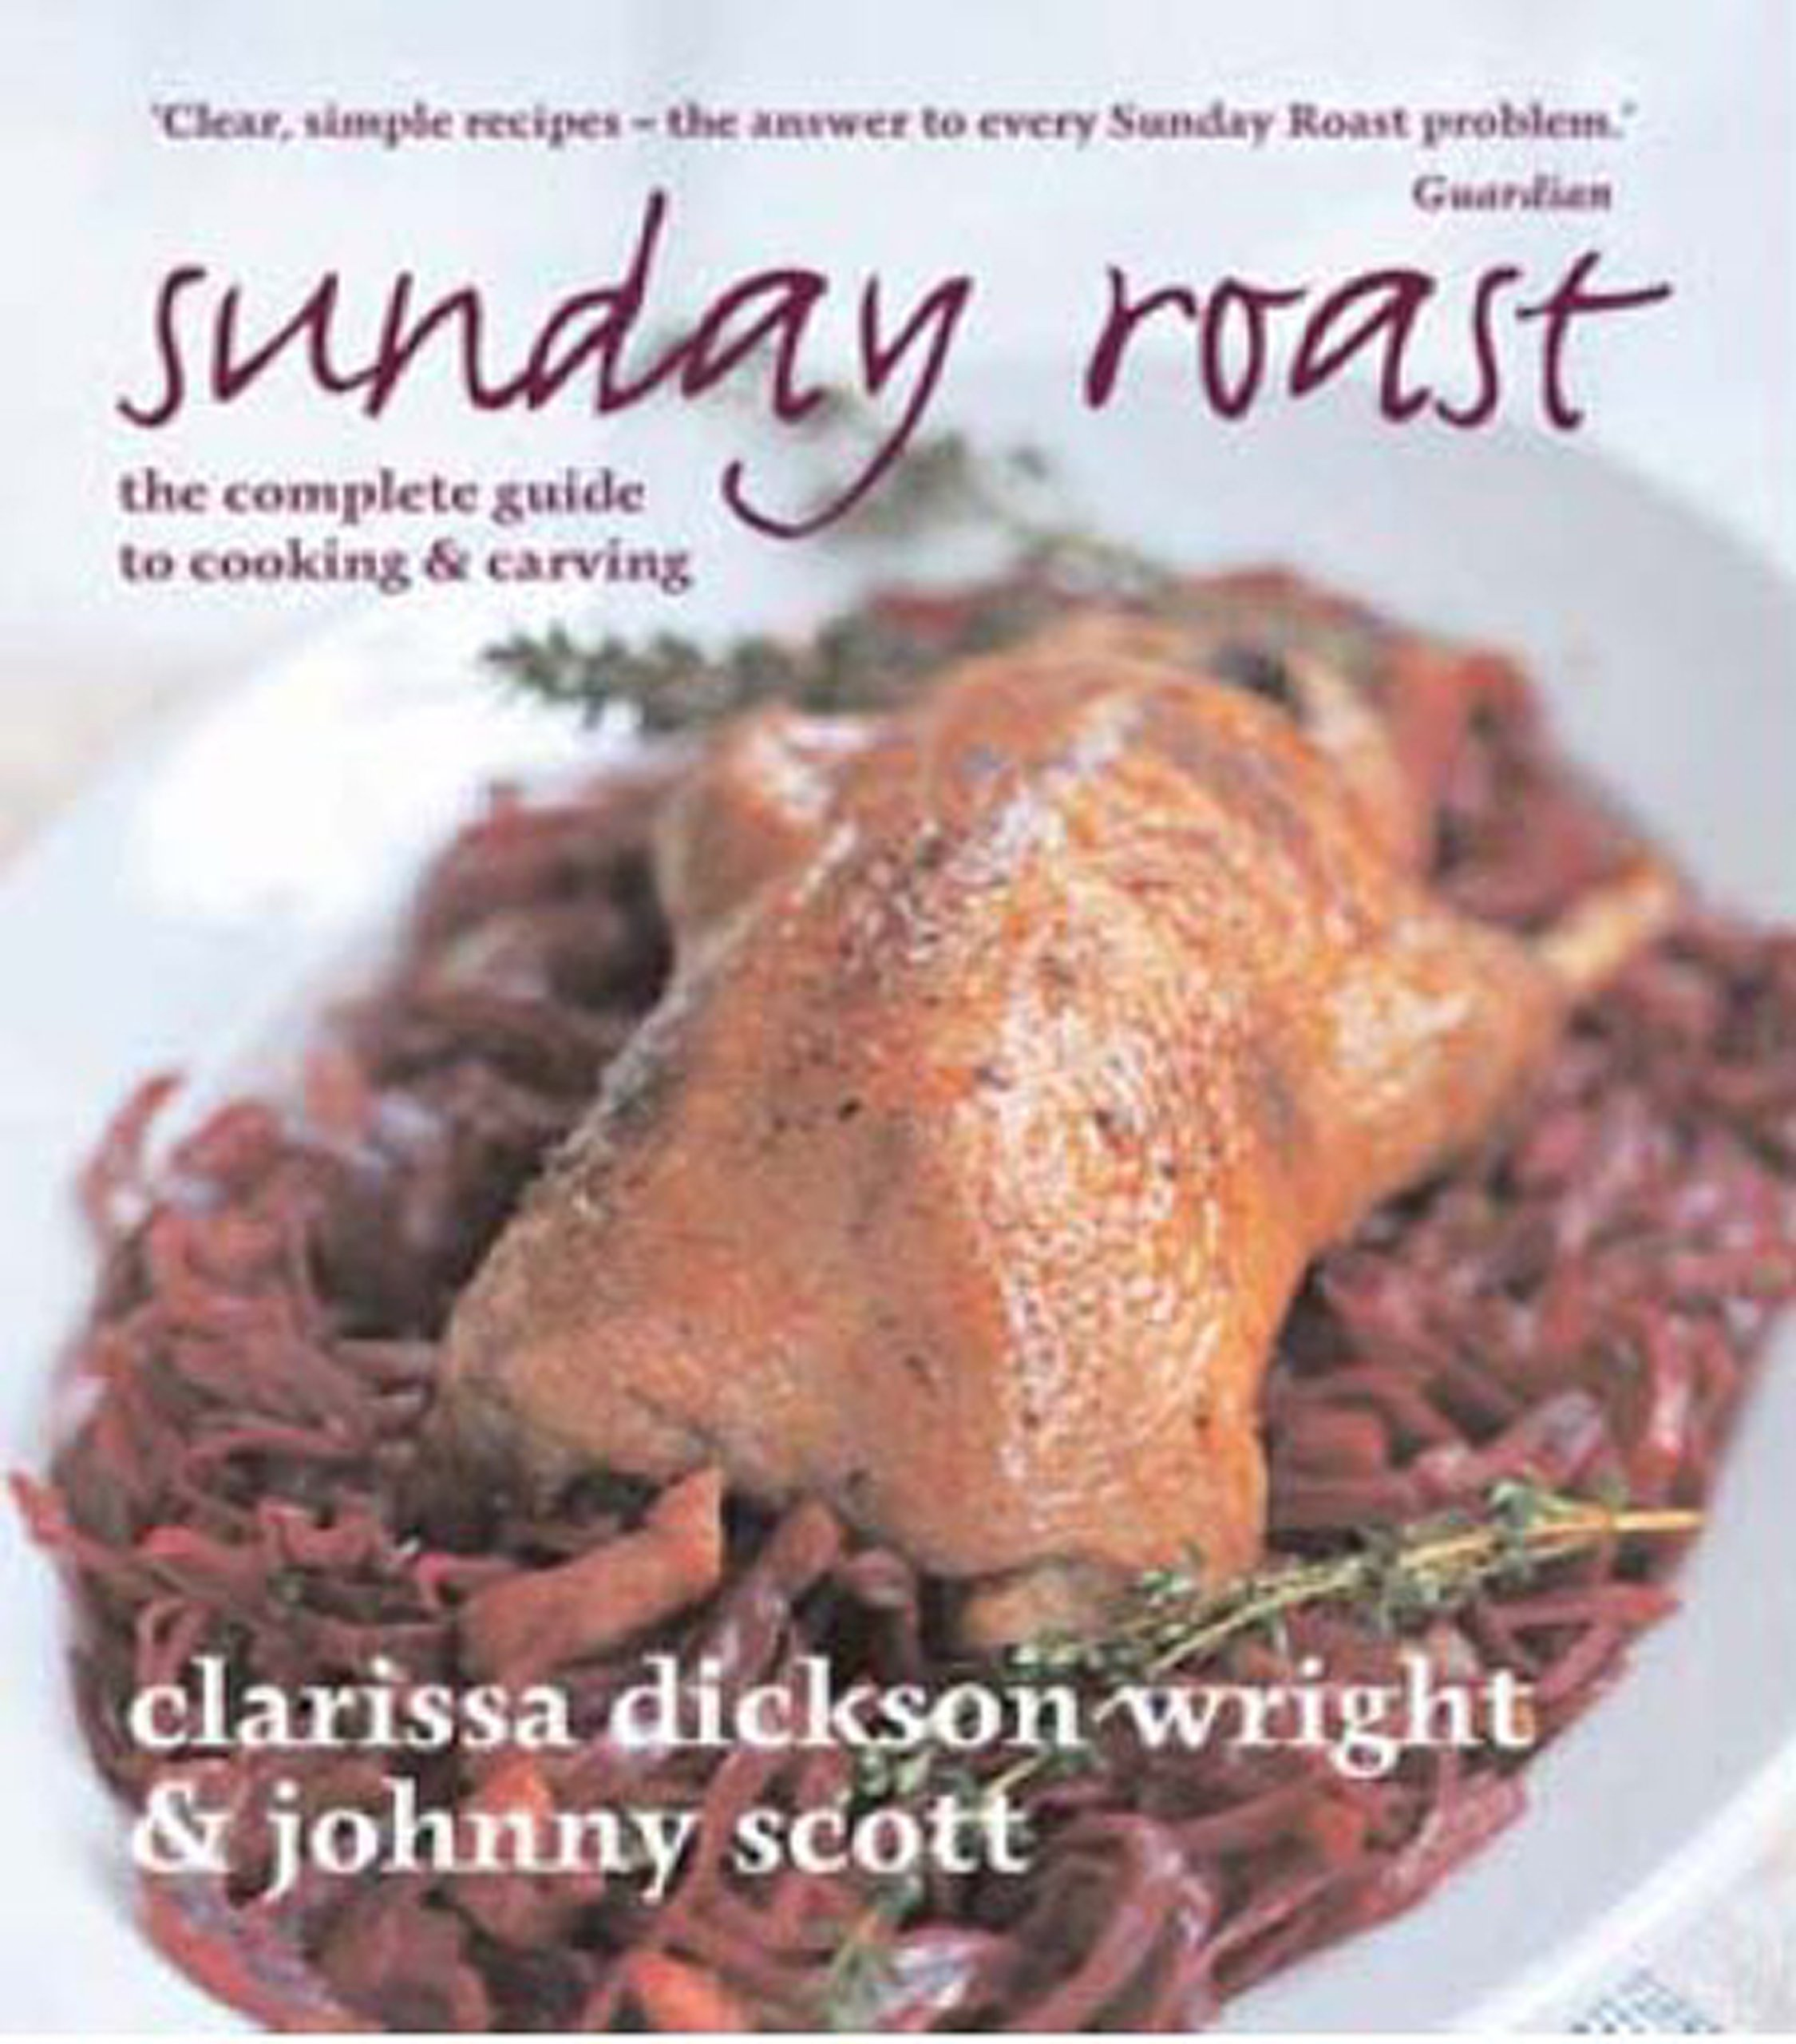 Sunday Roast: Theplete Guide To Cooking And Carving: Amazon: Clarissa  Dickson Wright, Johnny Scott: 9781856269575: Books